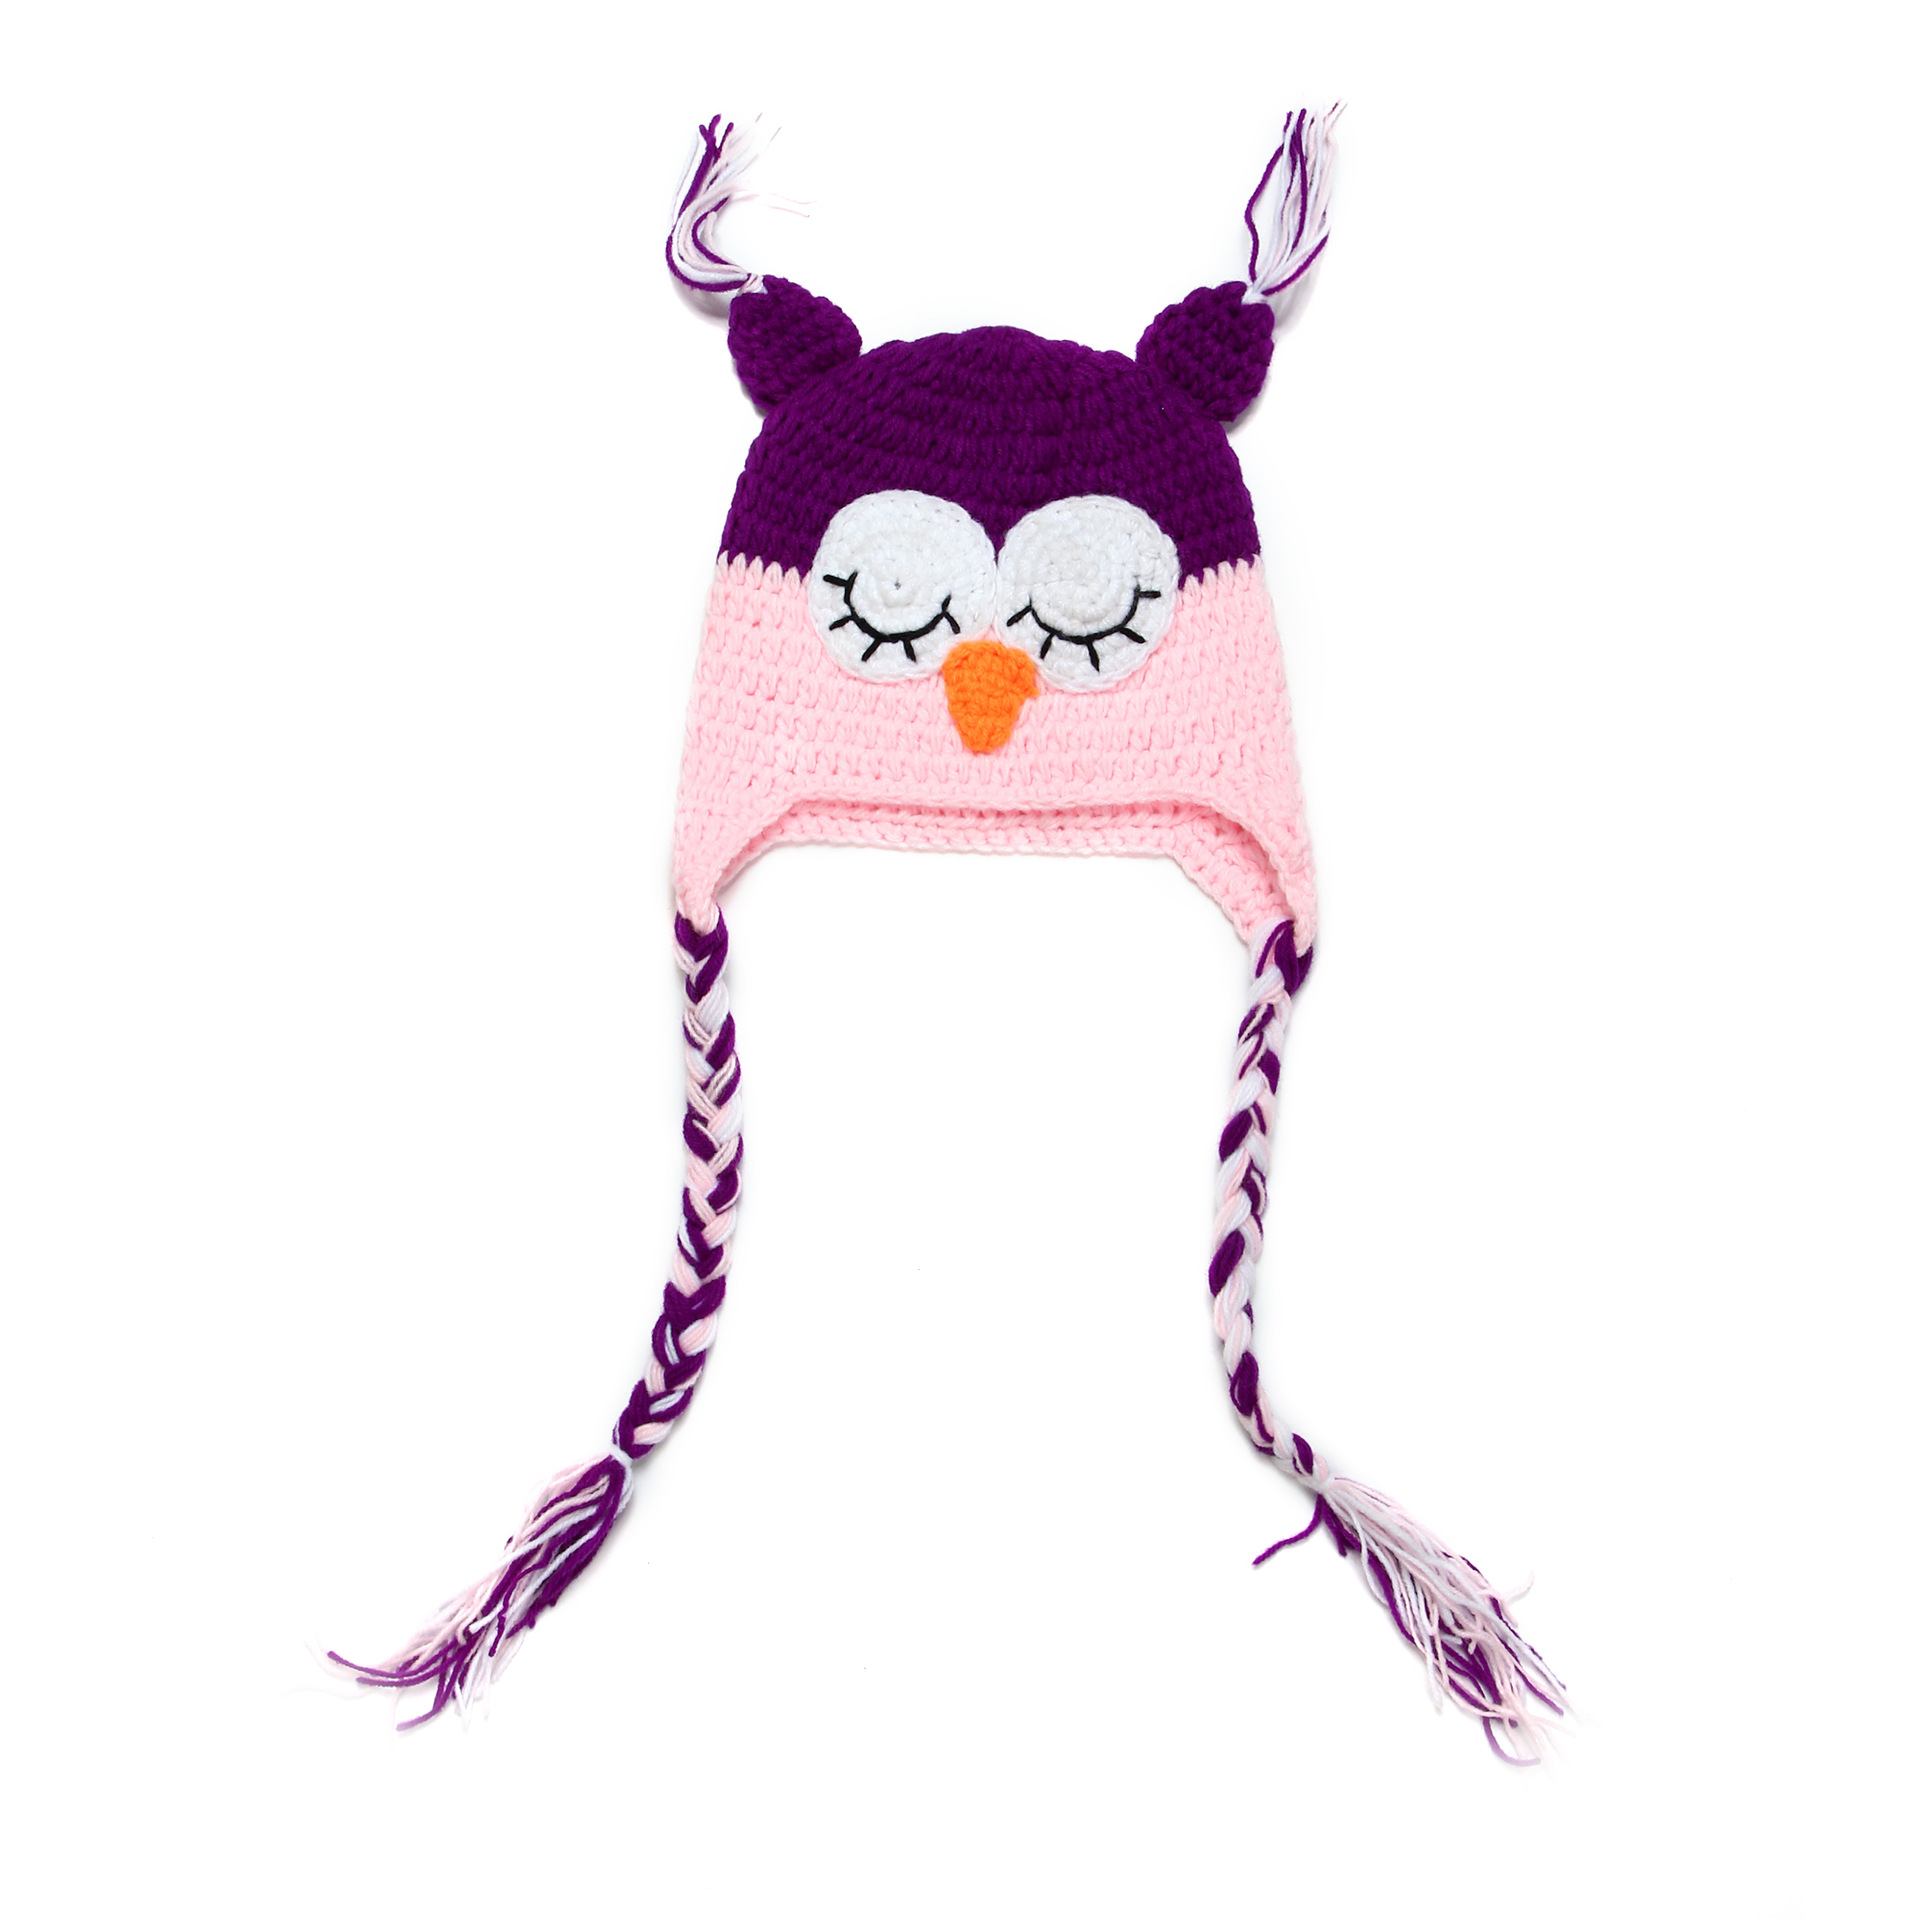 ede52441d17 Kids Baby Wool Hand knit Stocking Cap Owl Hat Animal Hat Cute Baby Gifts  Child knitted Accessories